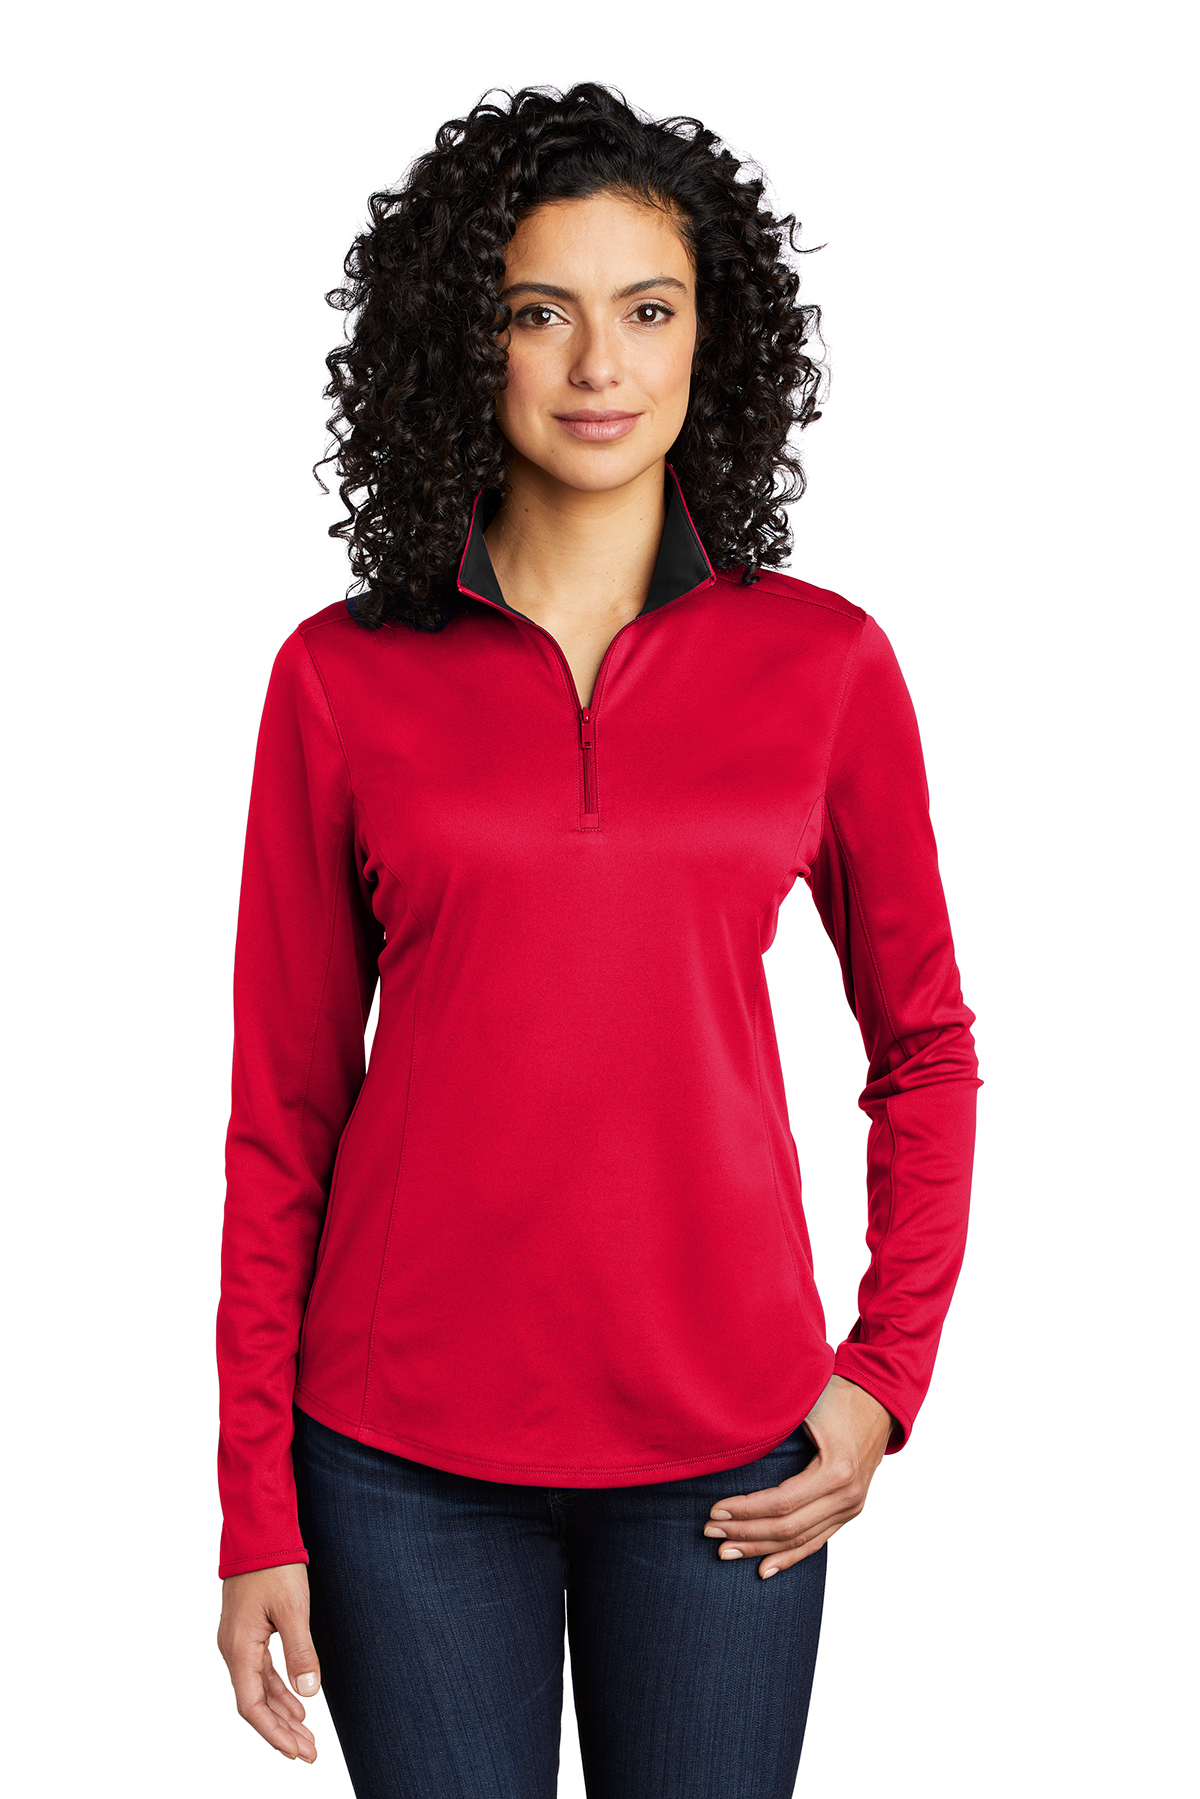 Port Authority LK584 - Ladies Silk Touch Performance 1/4-Zip